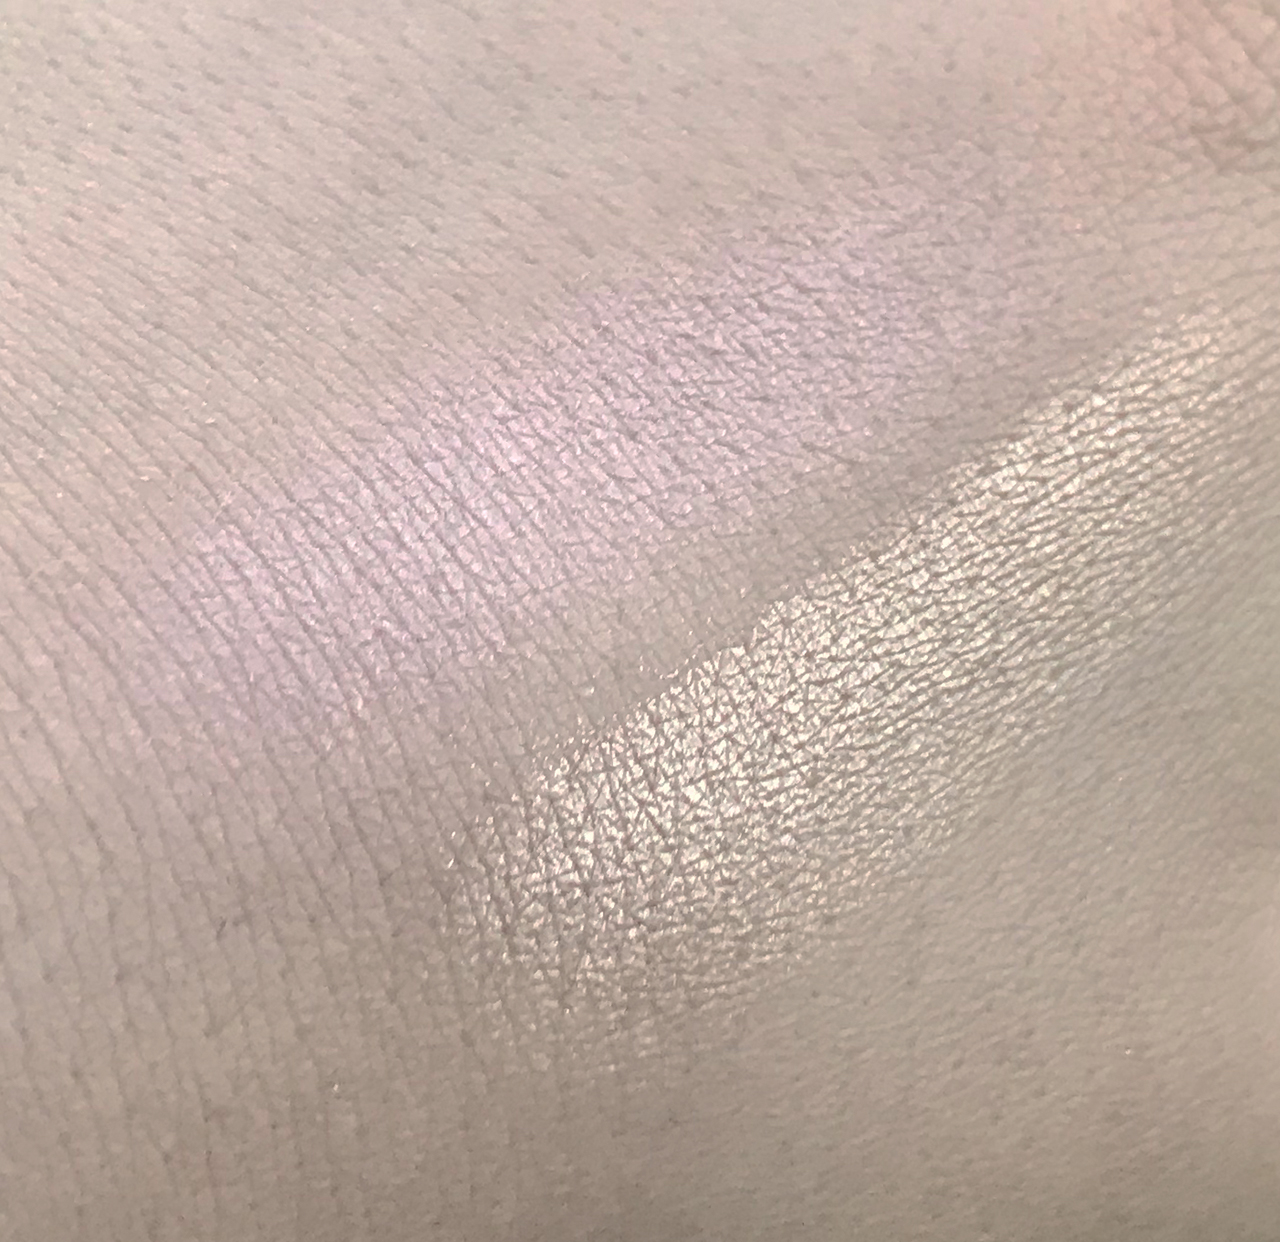 Blush Chanel Enlumineur Mac